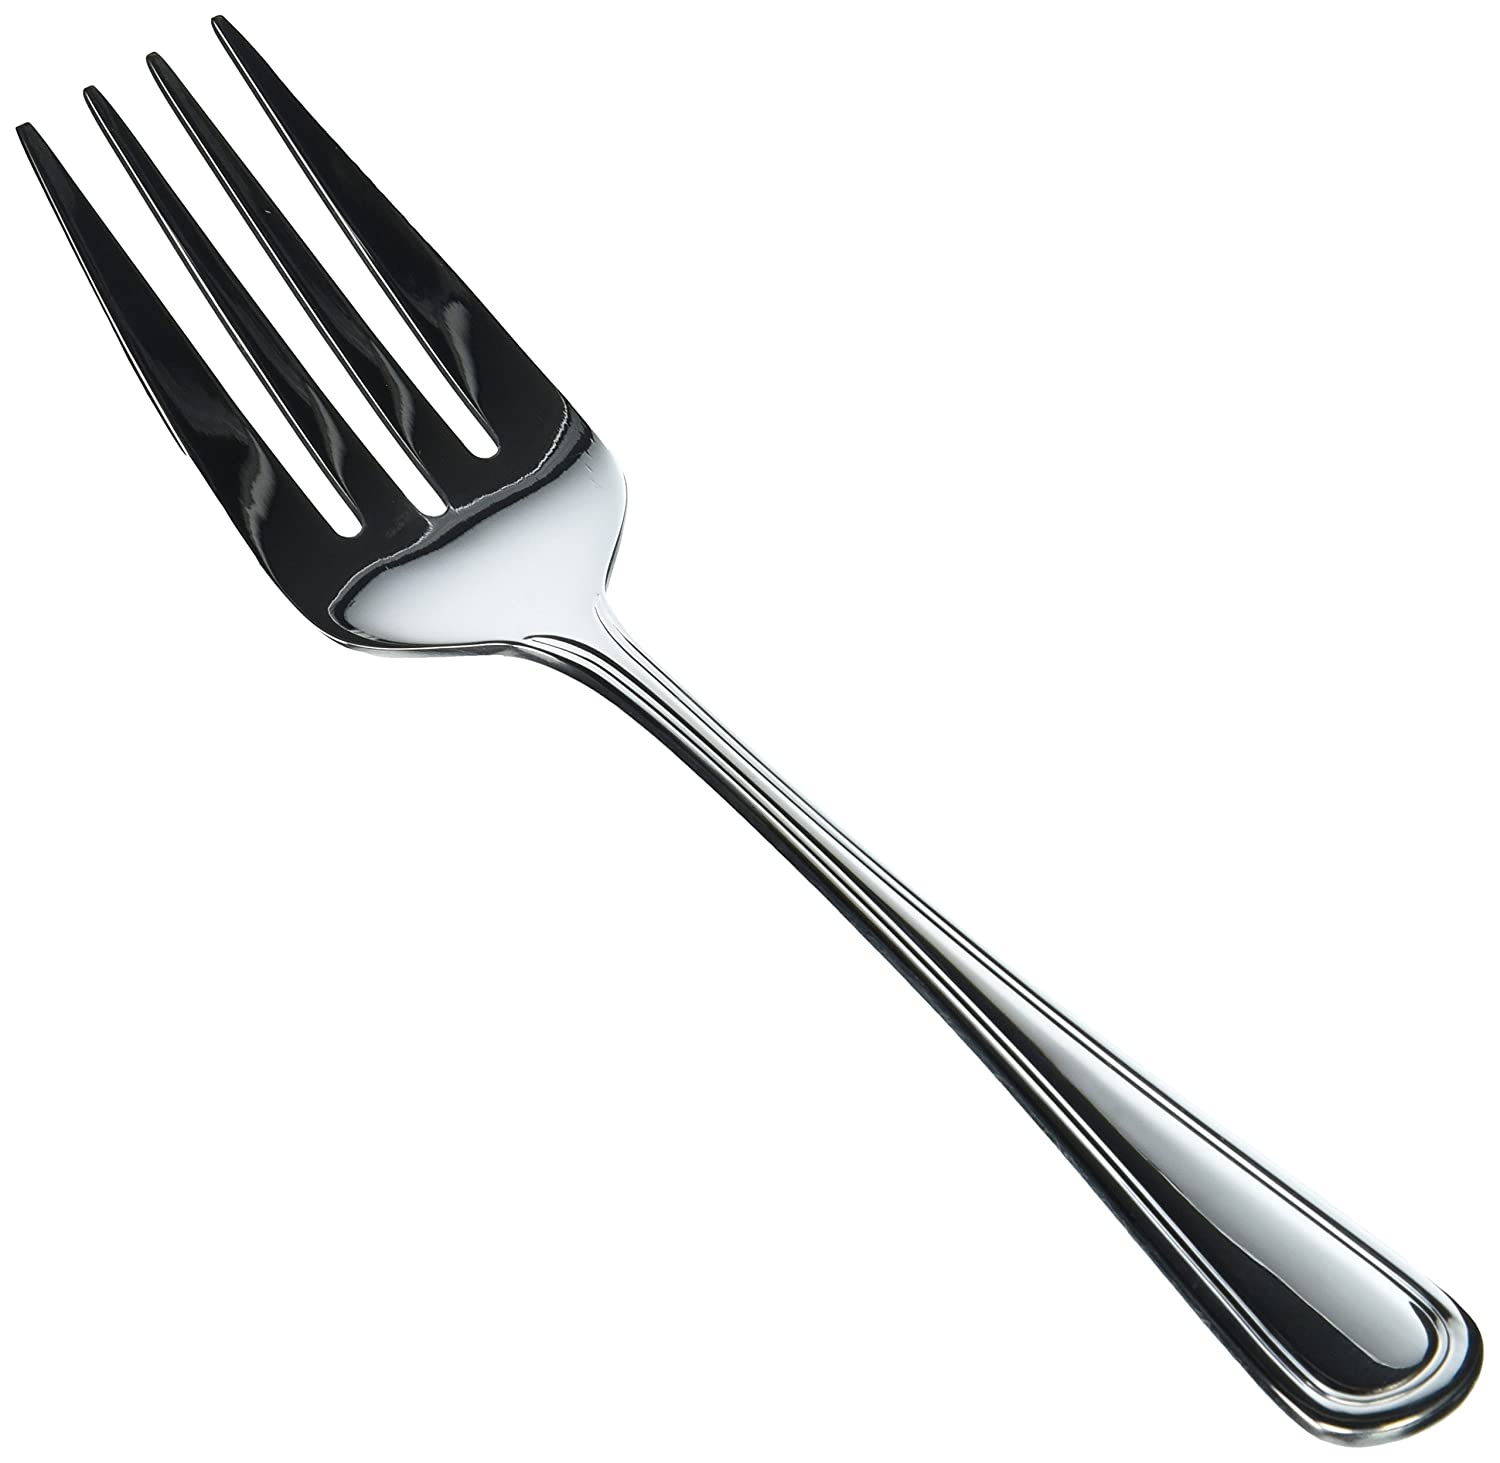 Winco Shangarila 12-Piece Cold Meat Serving Fork Set, Large, 18-8 Stainless Steel Winco USA 0030-22